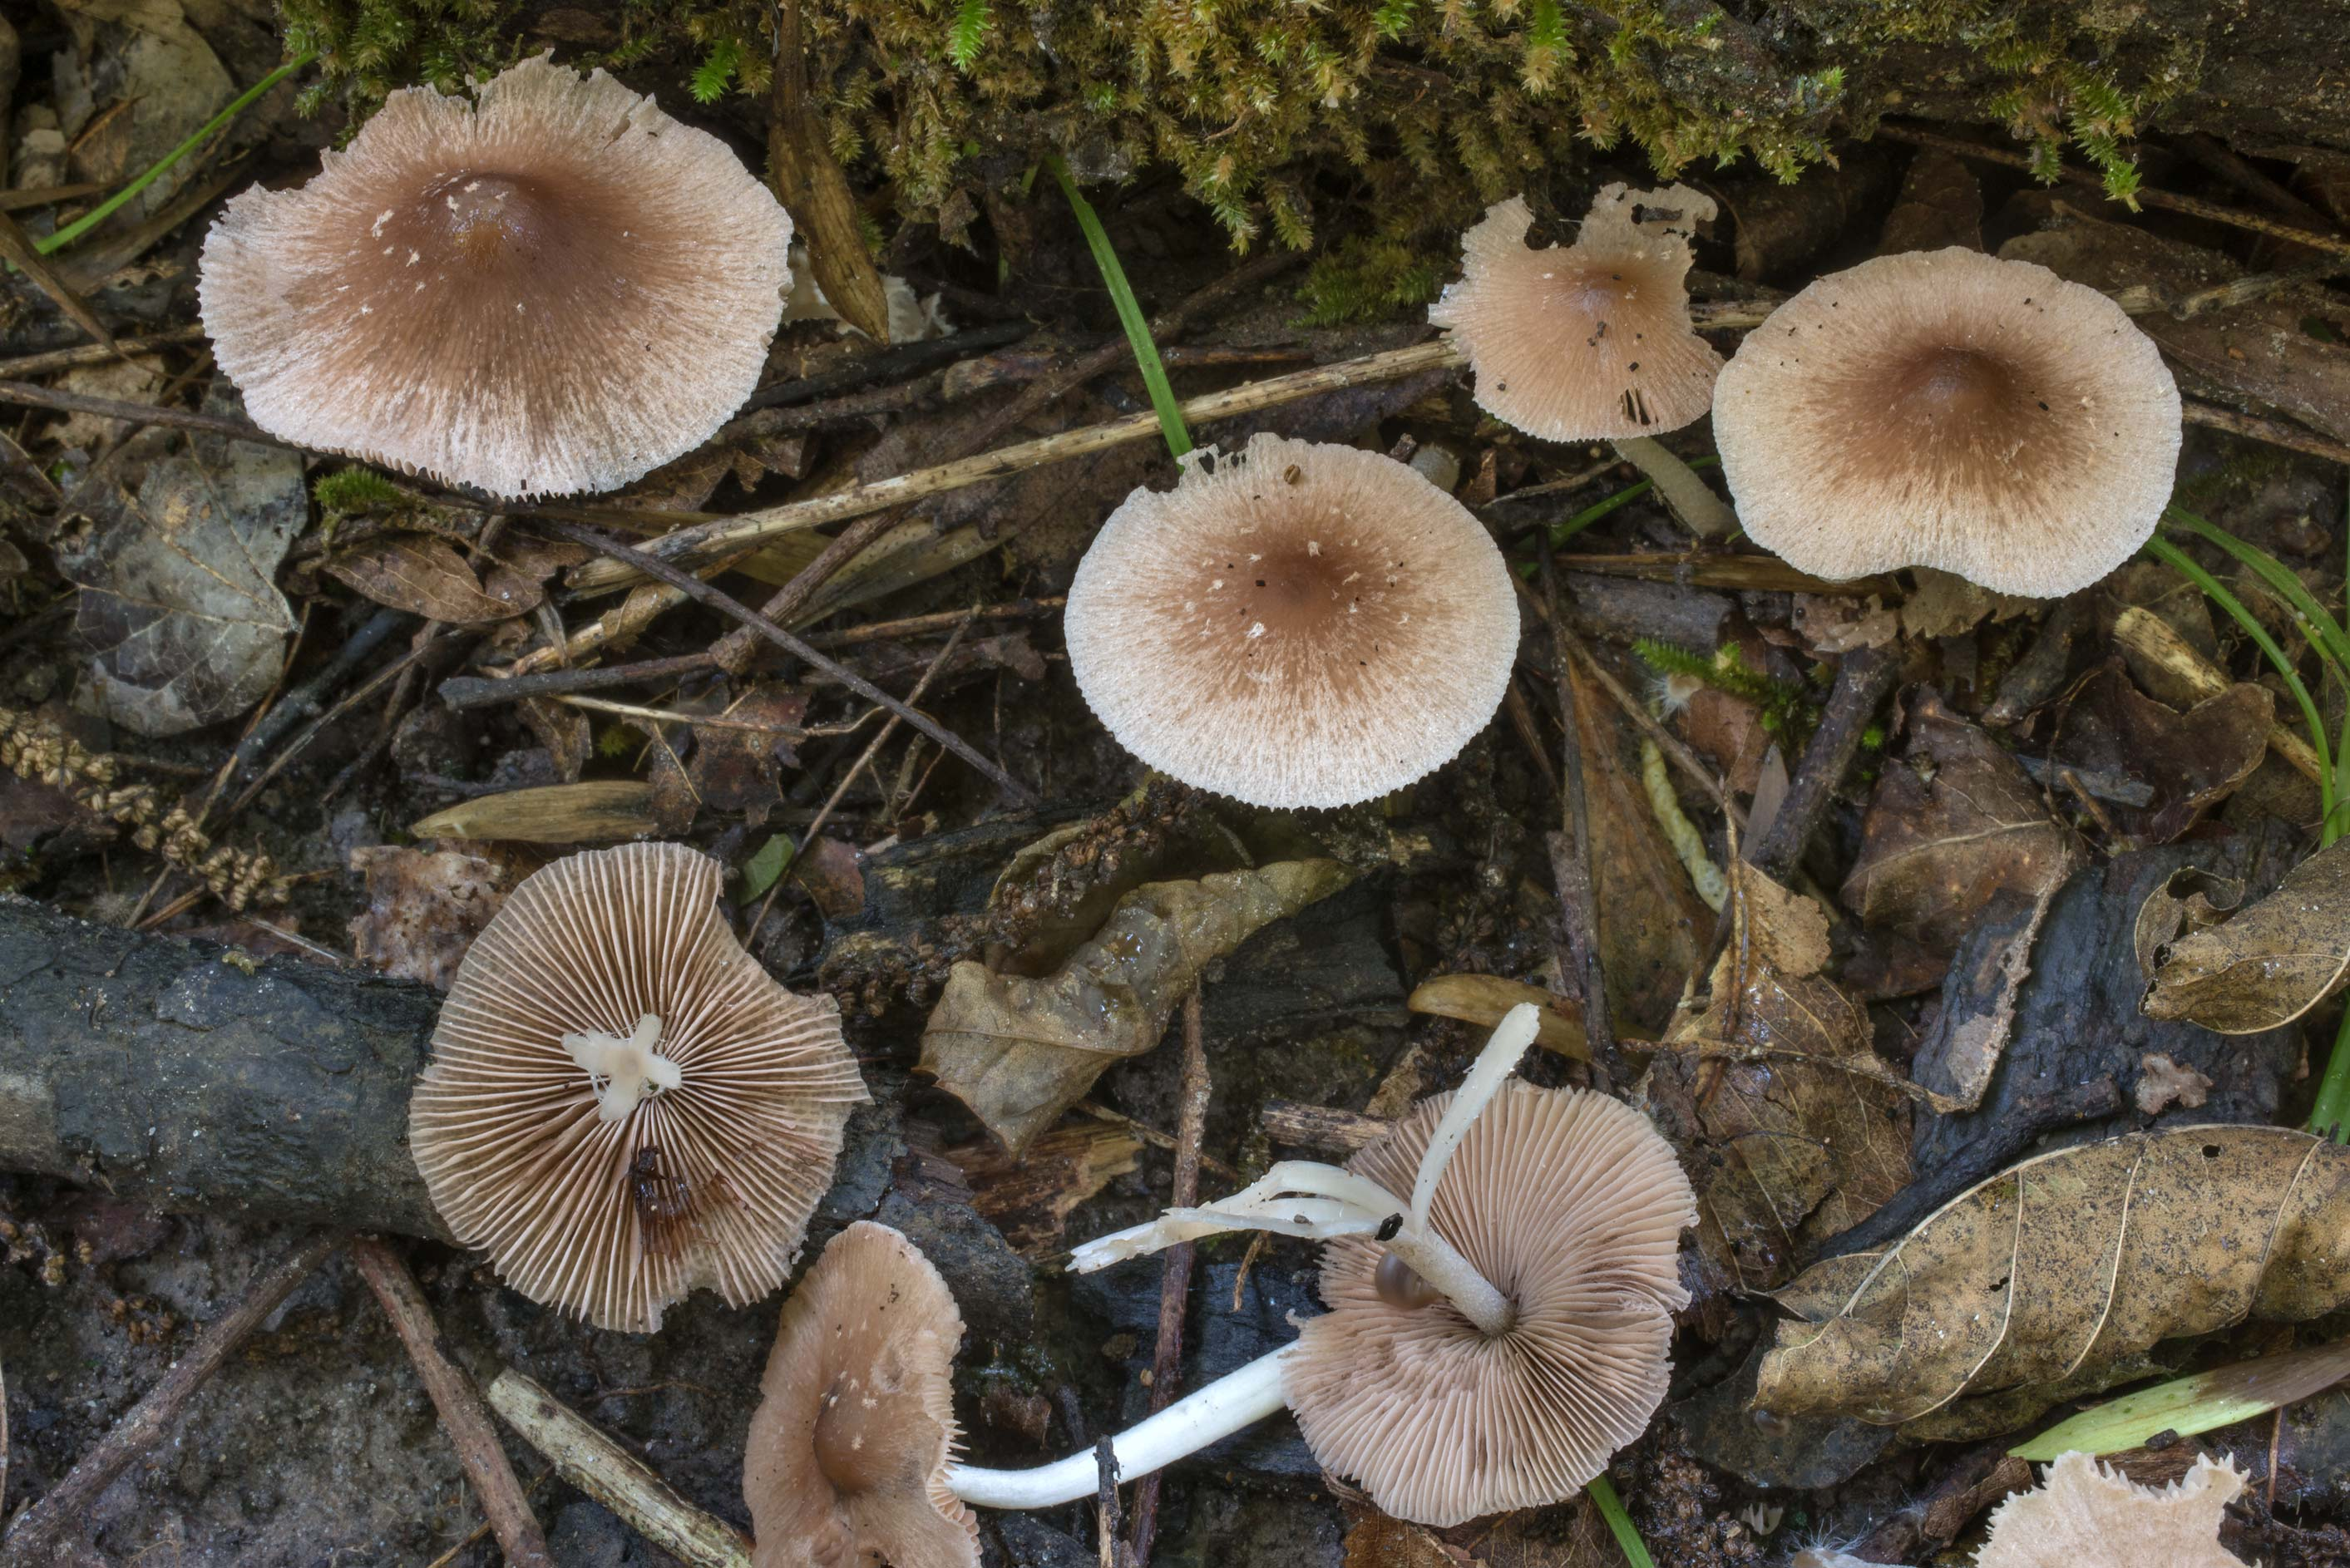 Brittlegill mushrooms (Psathyrella) in Lick Creek Park. College Station, Texas